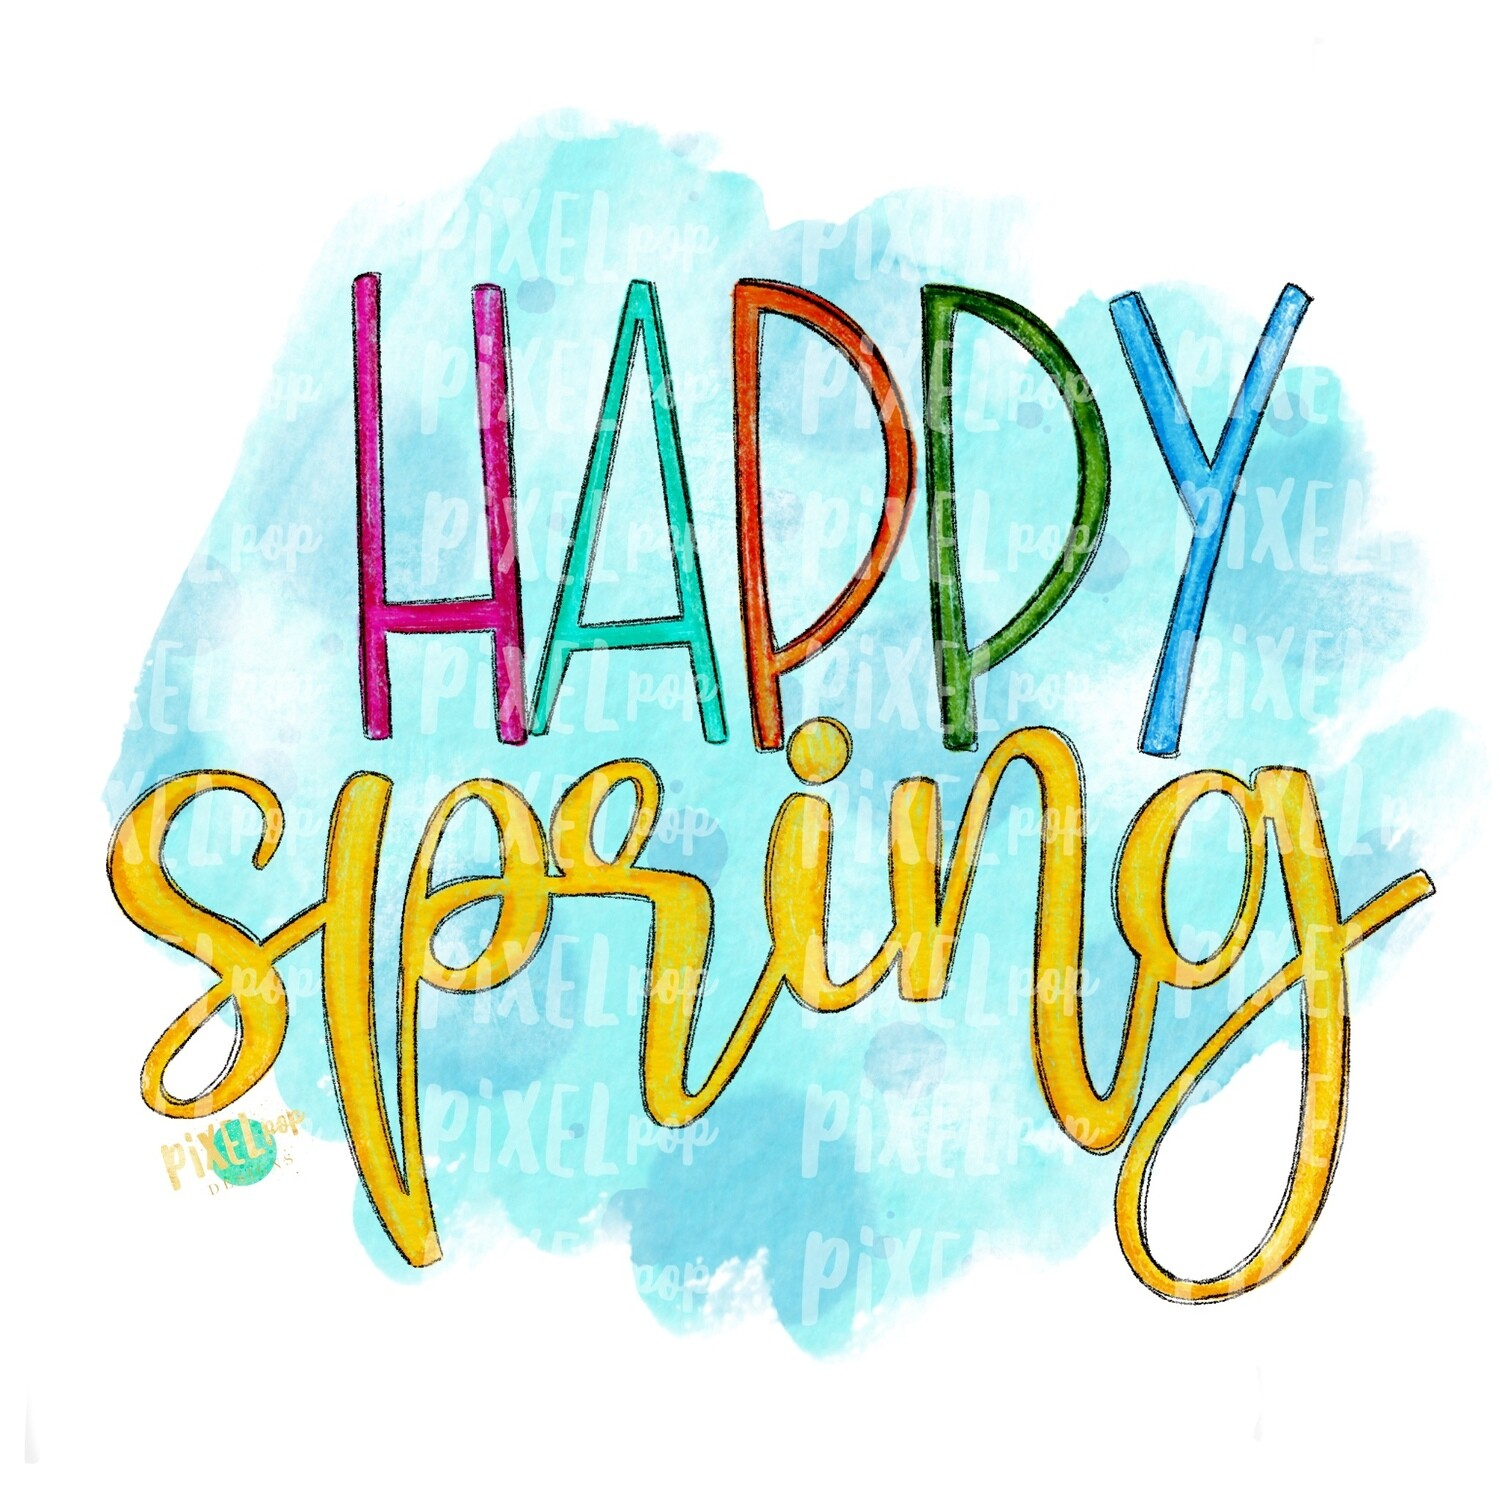 Happy Spring Watercolor PNG | Sublimation Design | Digital Painting | Watercolor Design | Spring Art | Flower Wreath | Watercolor Art